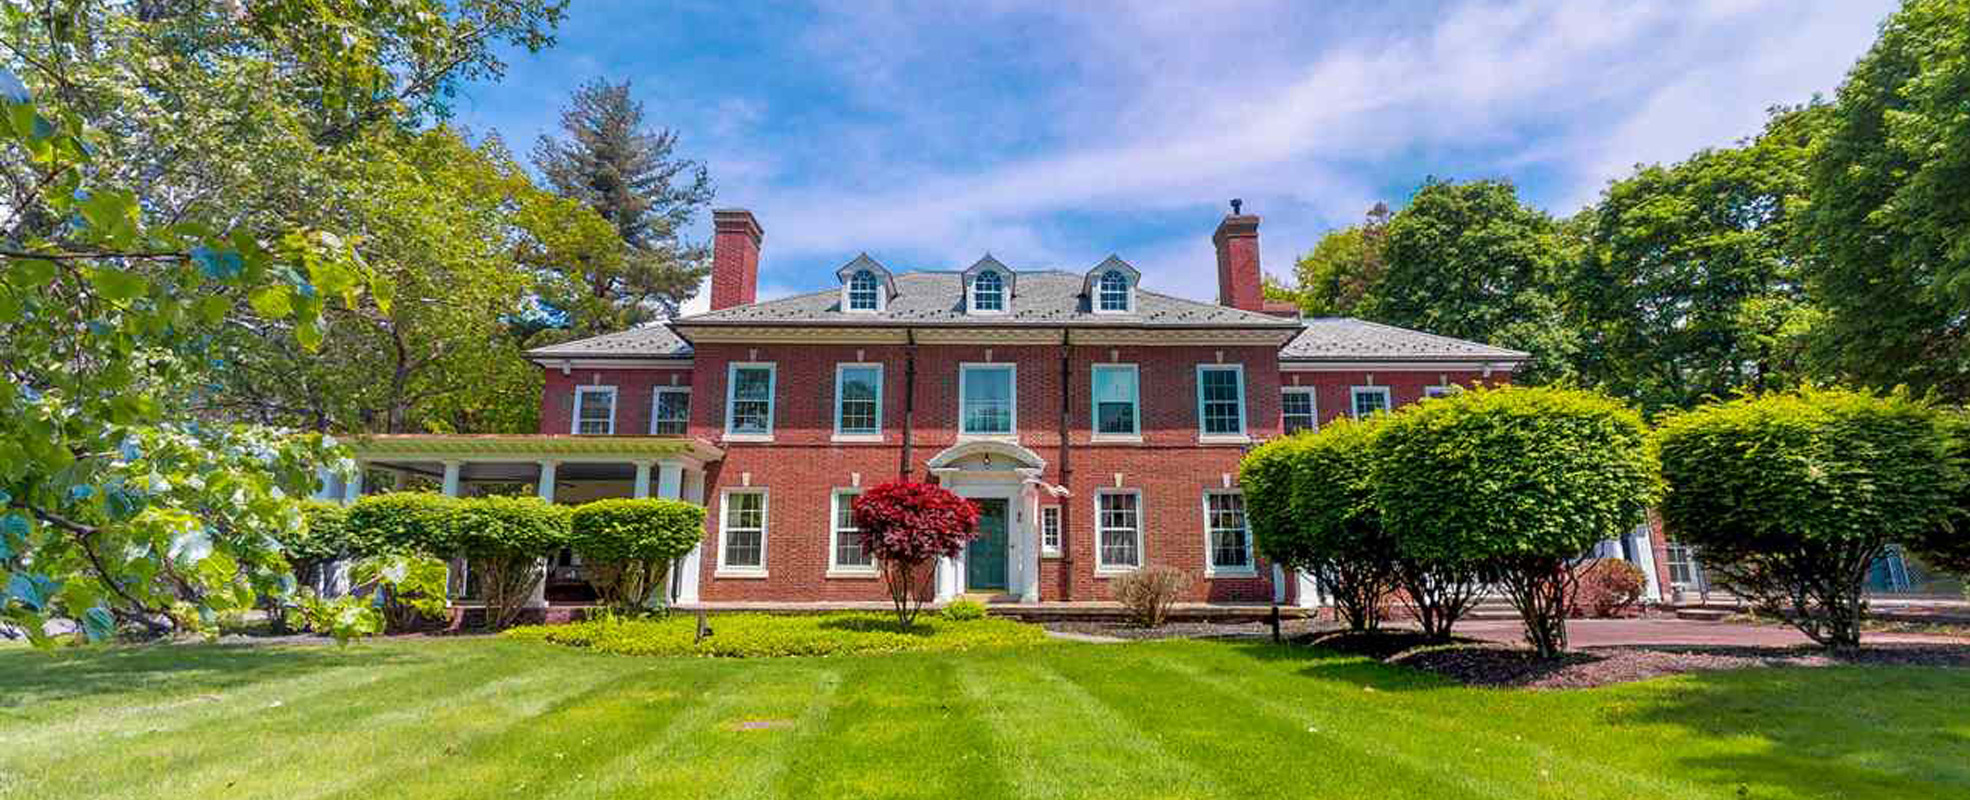 Featured: Historic Mansion For Sale